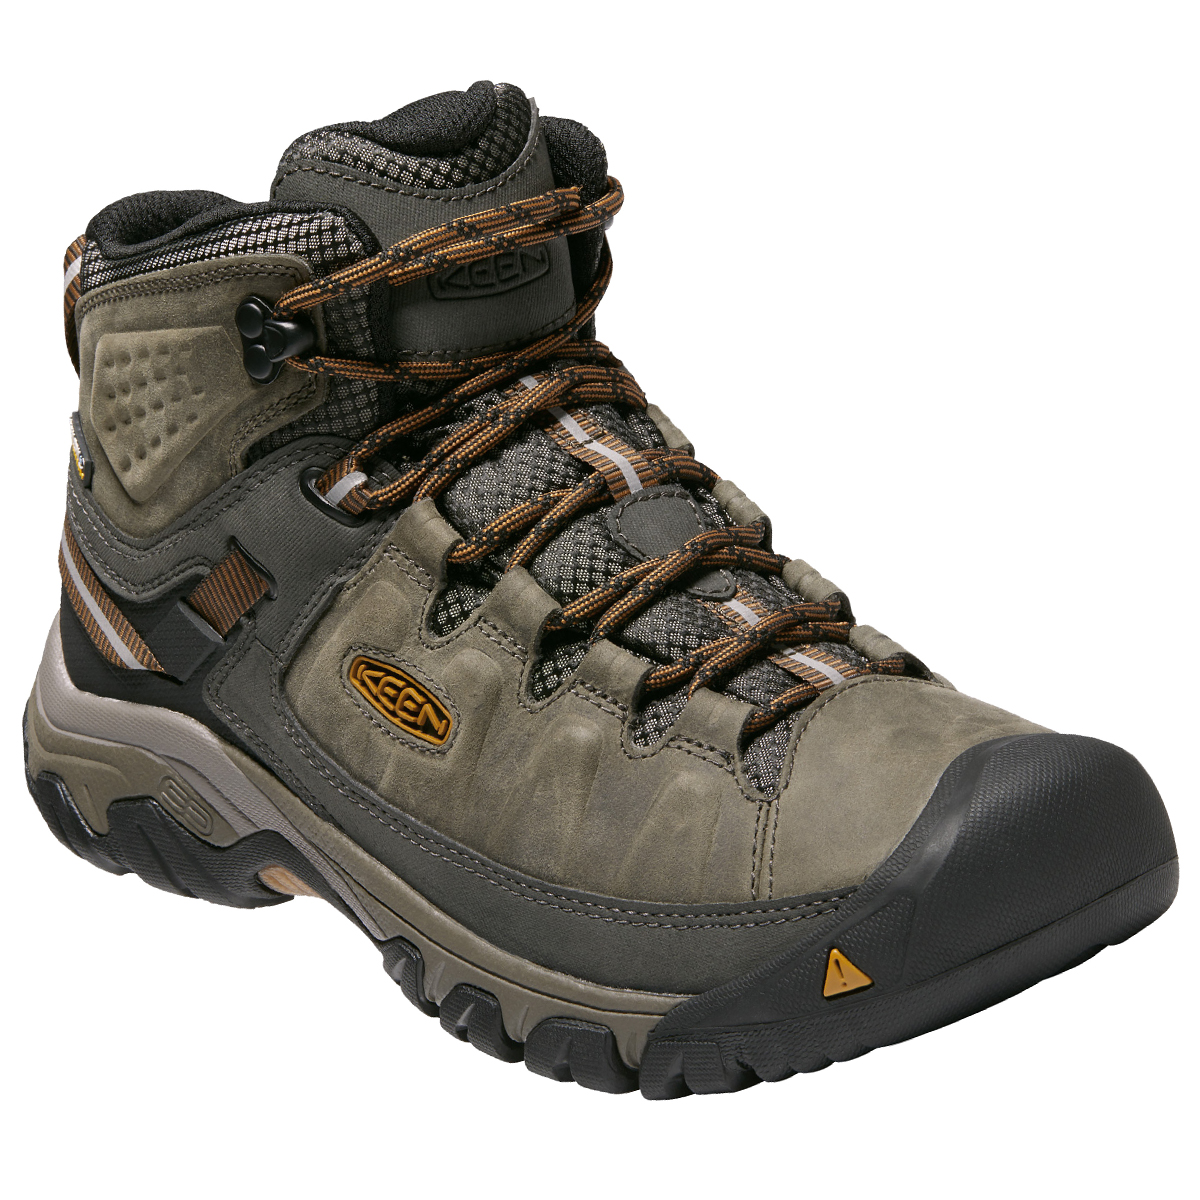 Keen Men's Targhee 3 Waterproof Hiking Shoe, Wide - Brown, 11.5